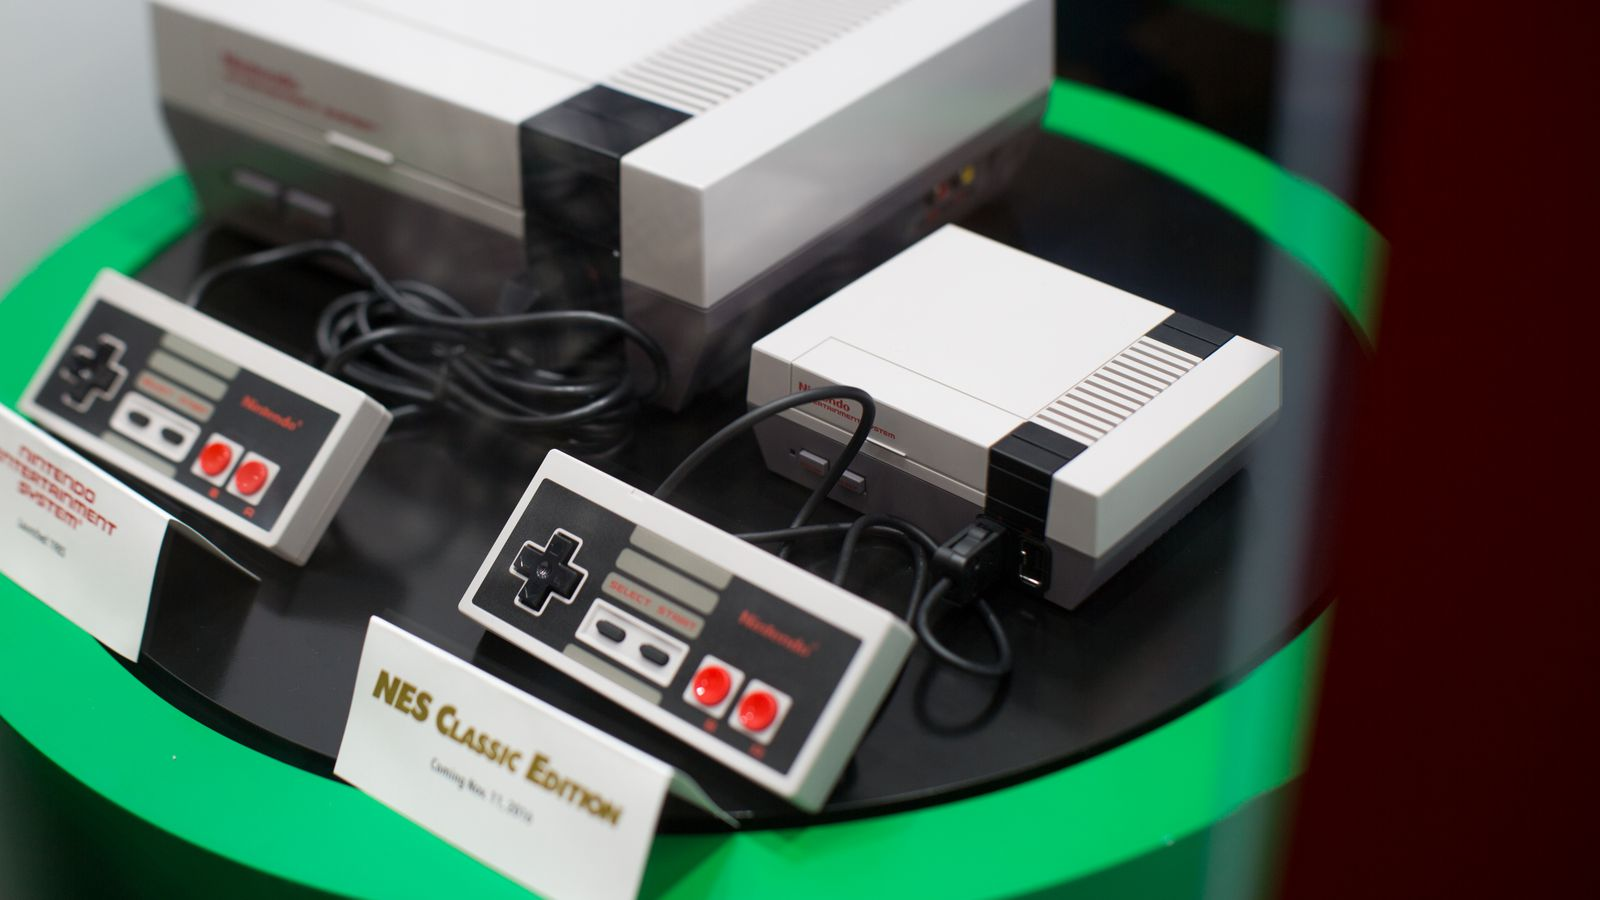 The best NES Clic Edition wireless controller - The Verge Nintendo Entertainment System Wiring Diagram on xbox 360 wiring diagram, wii wiring diagram, playstation 2 wiring diagram,